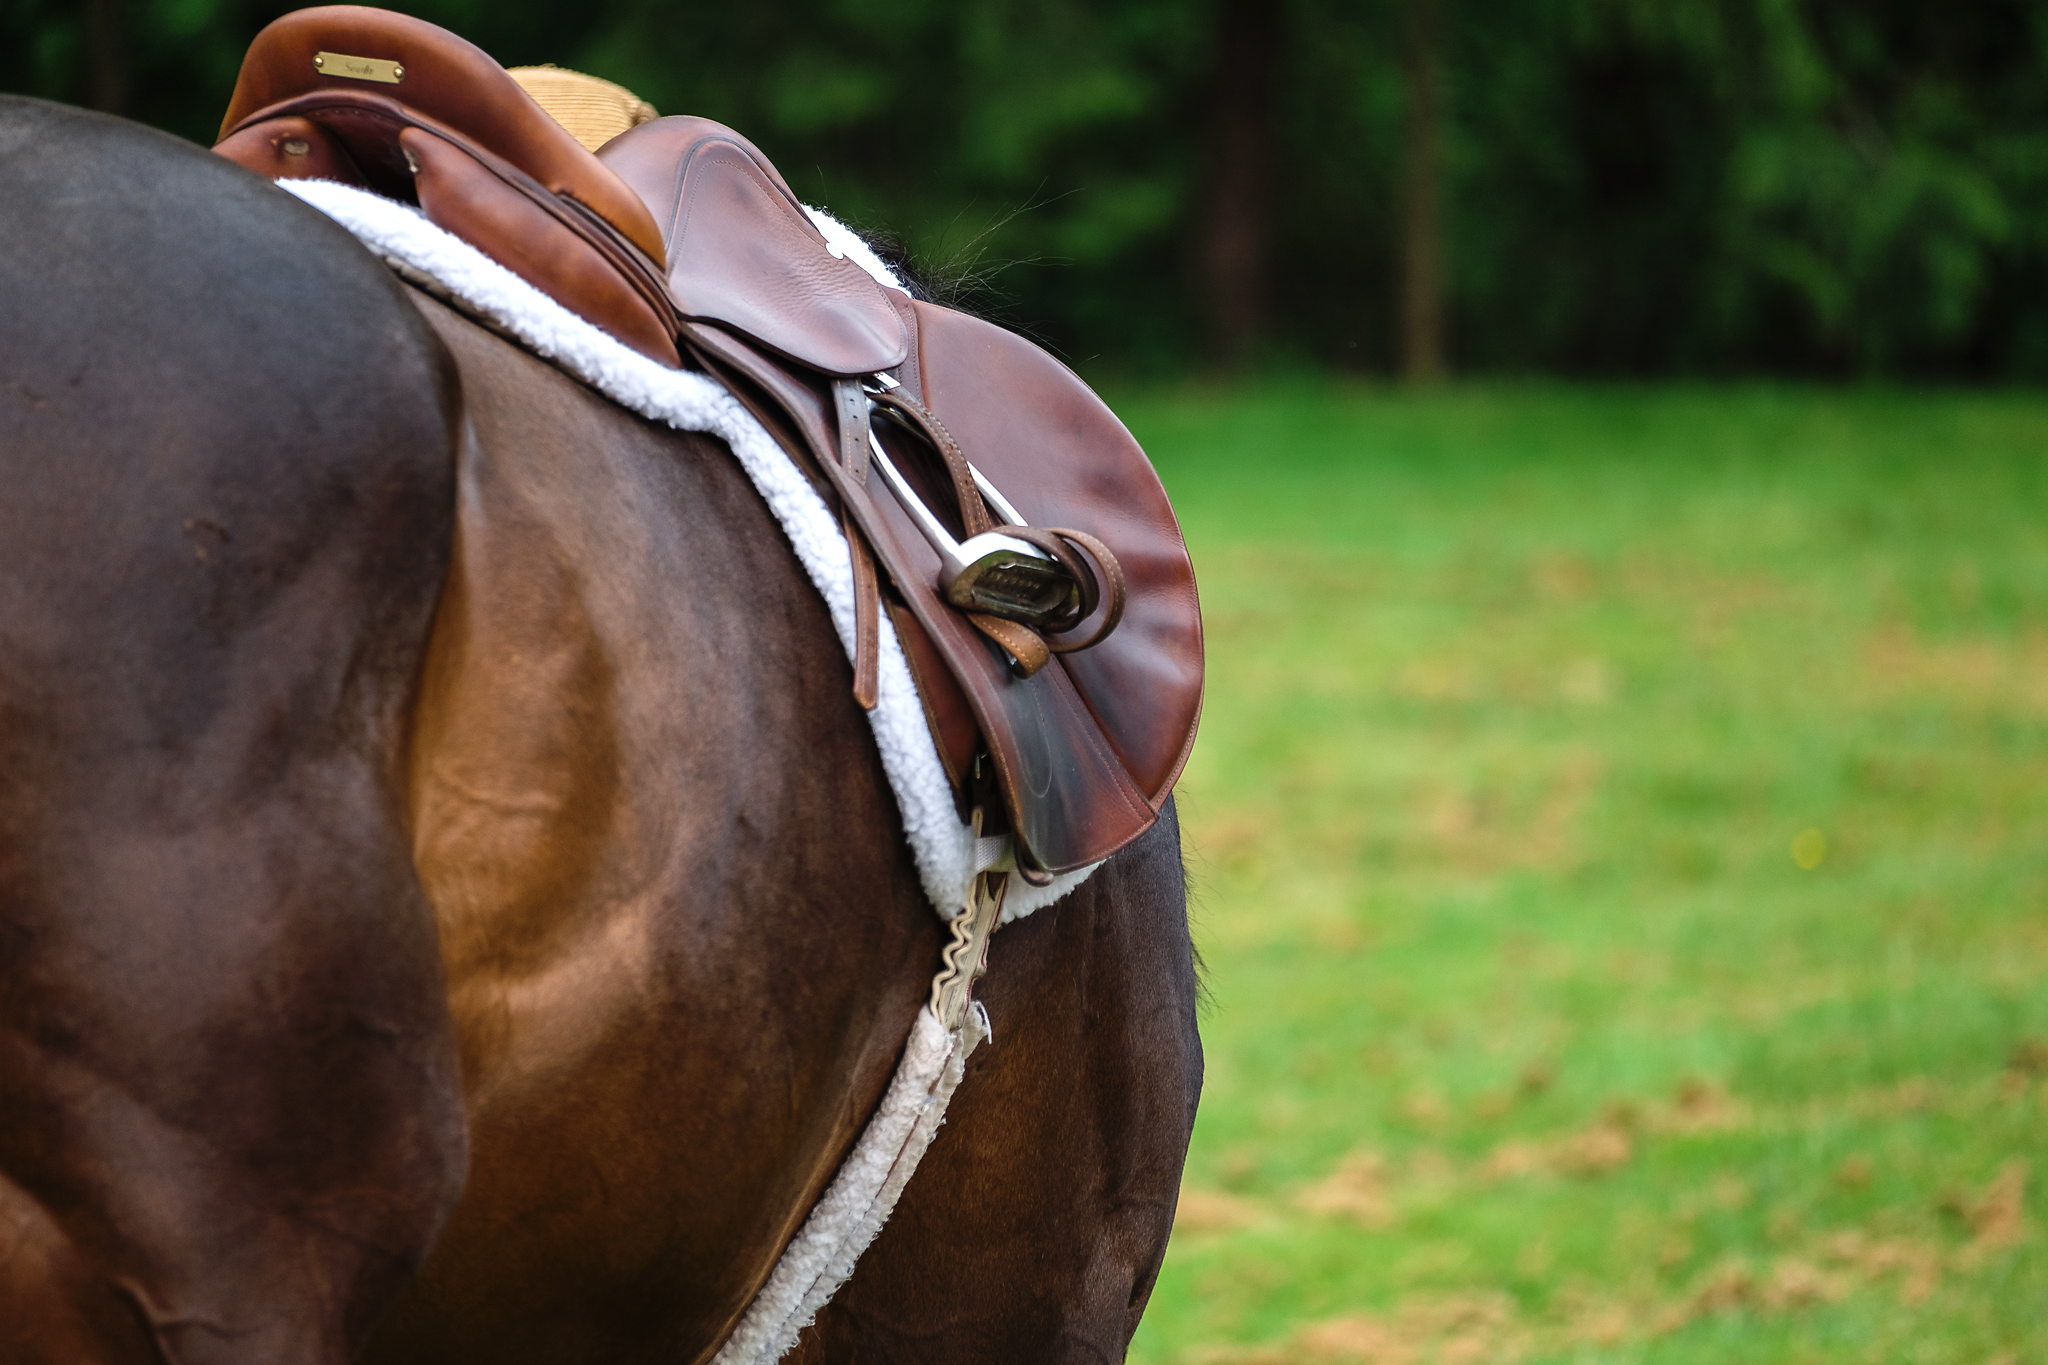 Washington Equine Photography_NMP Images_Detail Shot_Battle Ground WA_Saddle 1.jpg